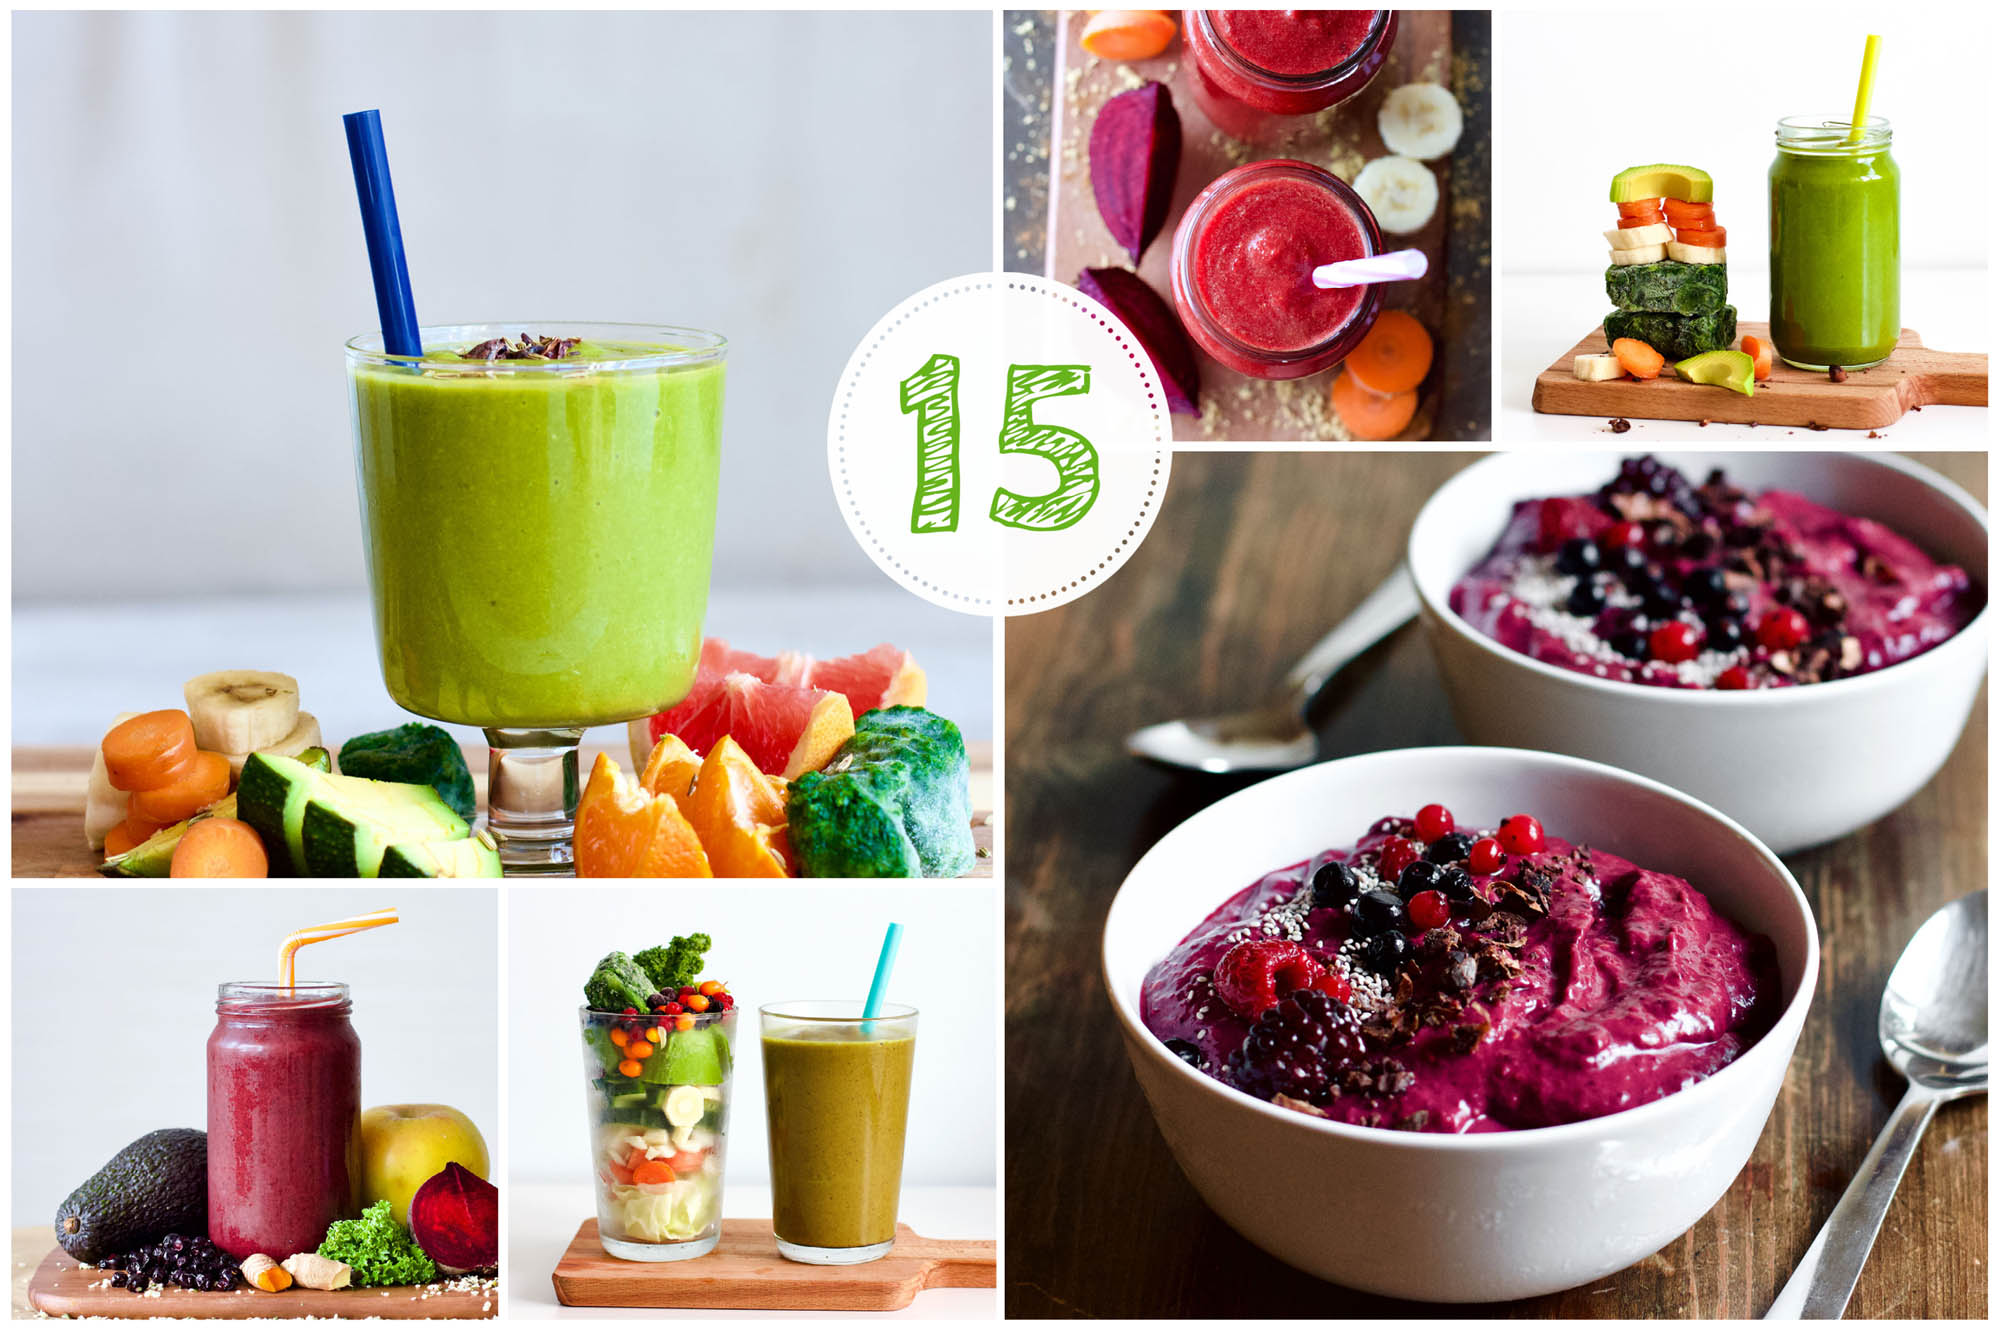 15 Plant-Based Smoothies & Smoothie Bowls (Low-Carb & Healthy)